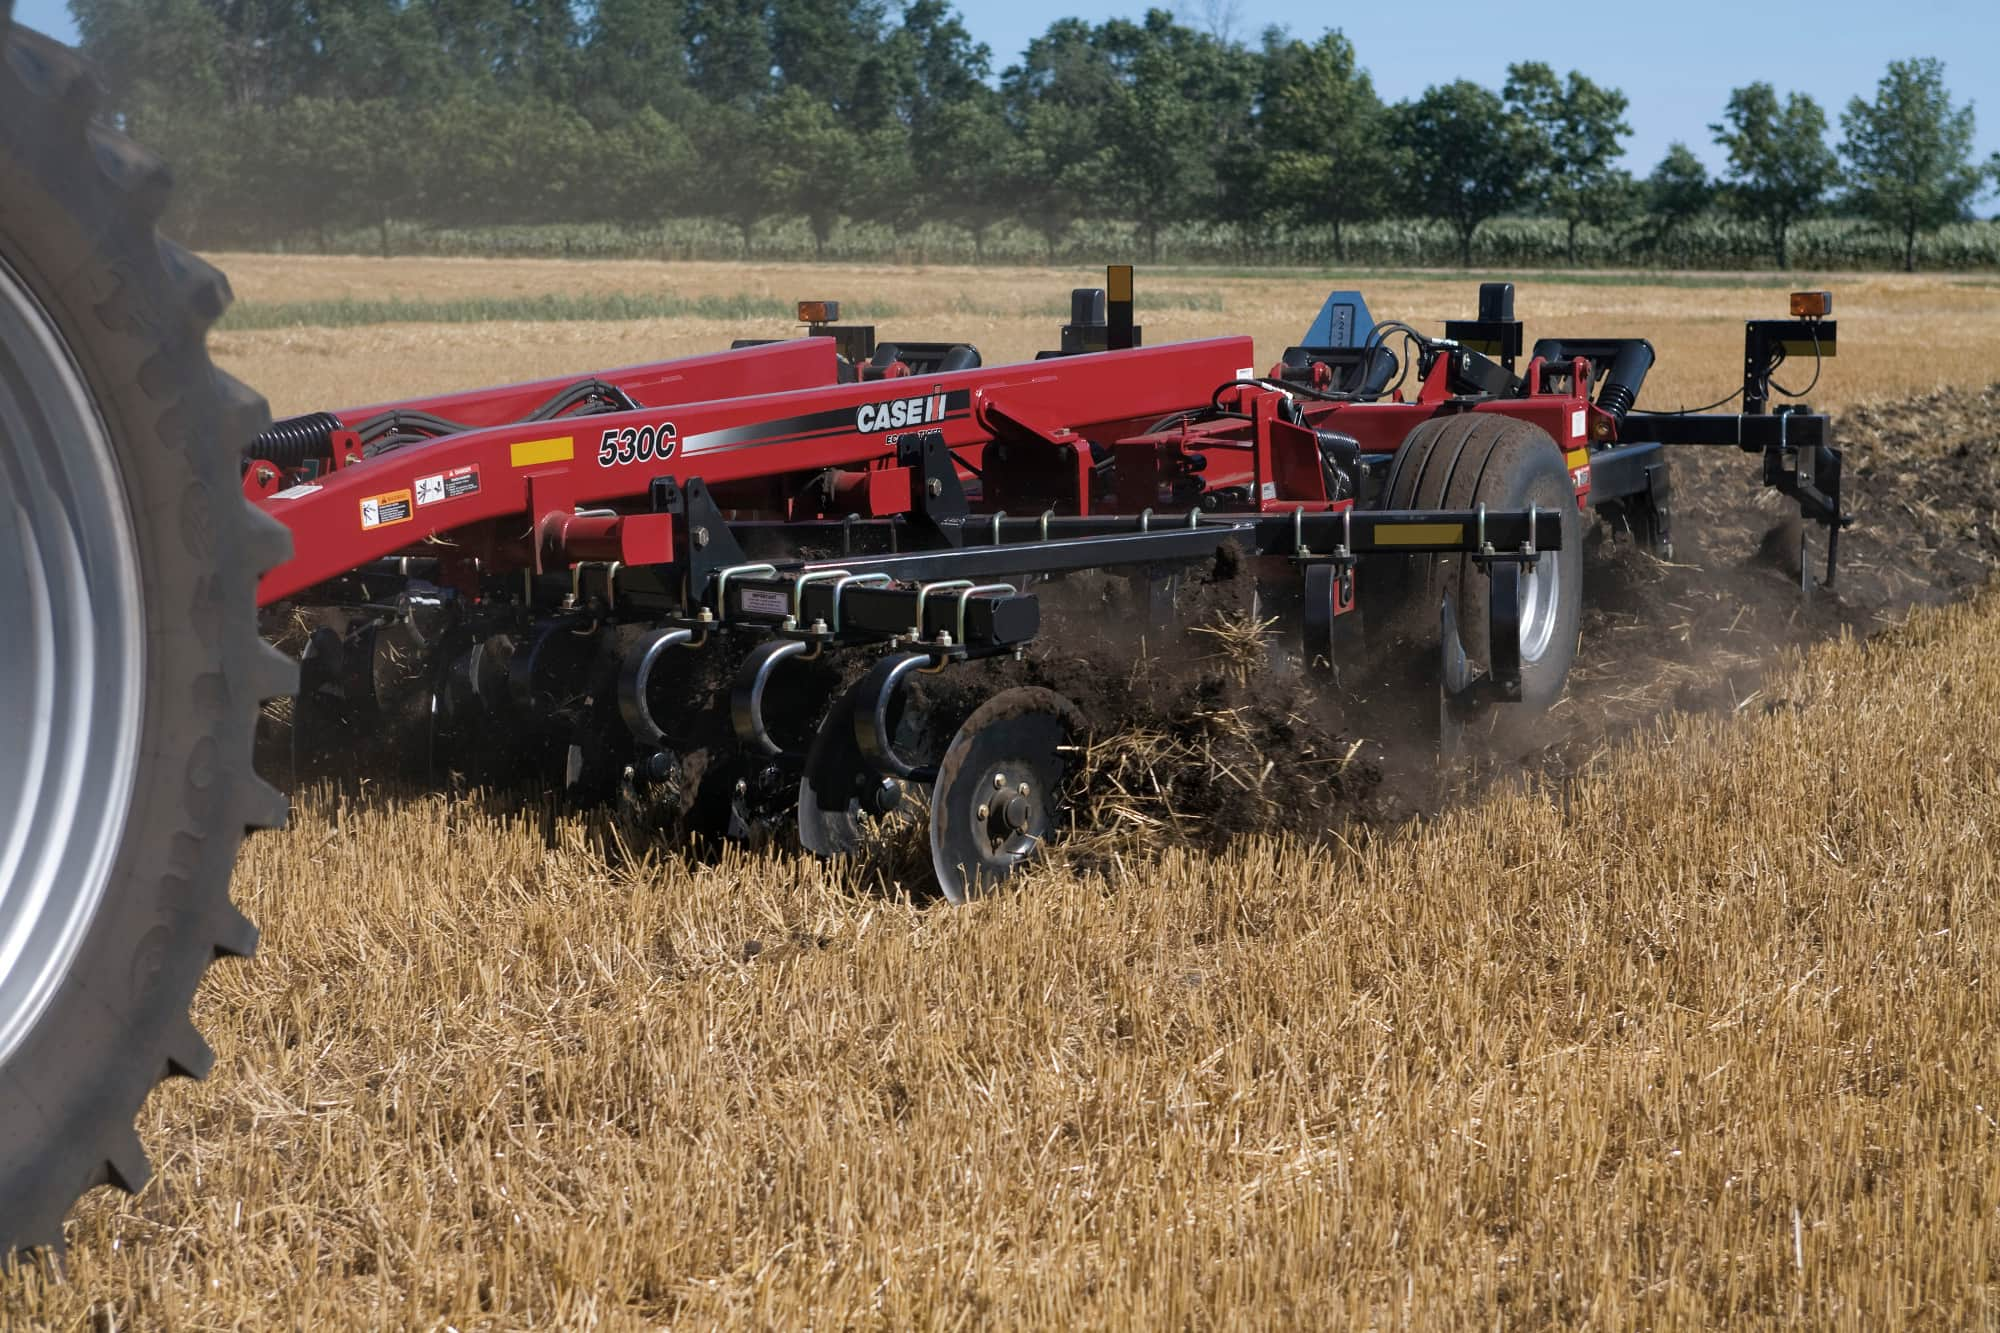 cih_530C 530C 009 05?width=620&height=310 disk rippers tillage equipment case ih  at mifinder.co